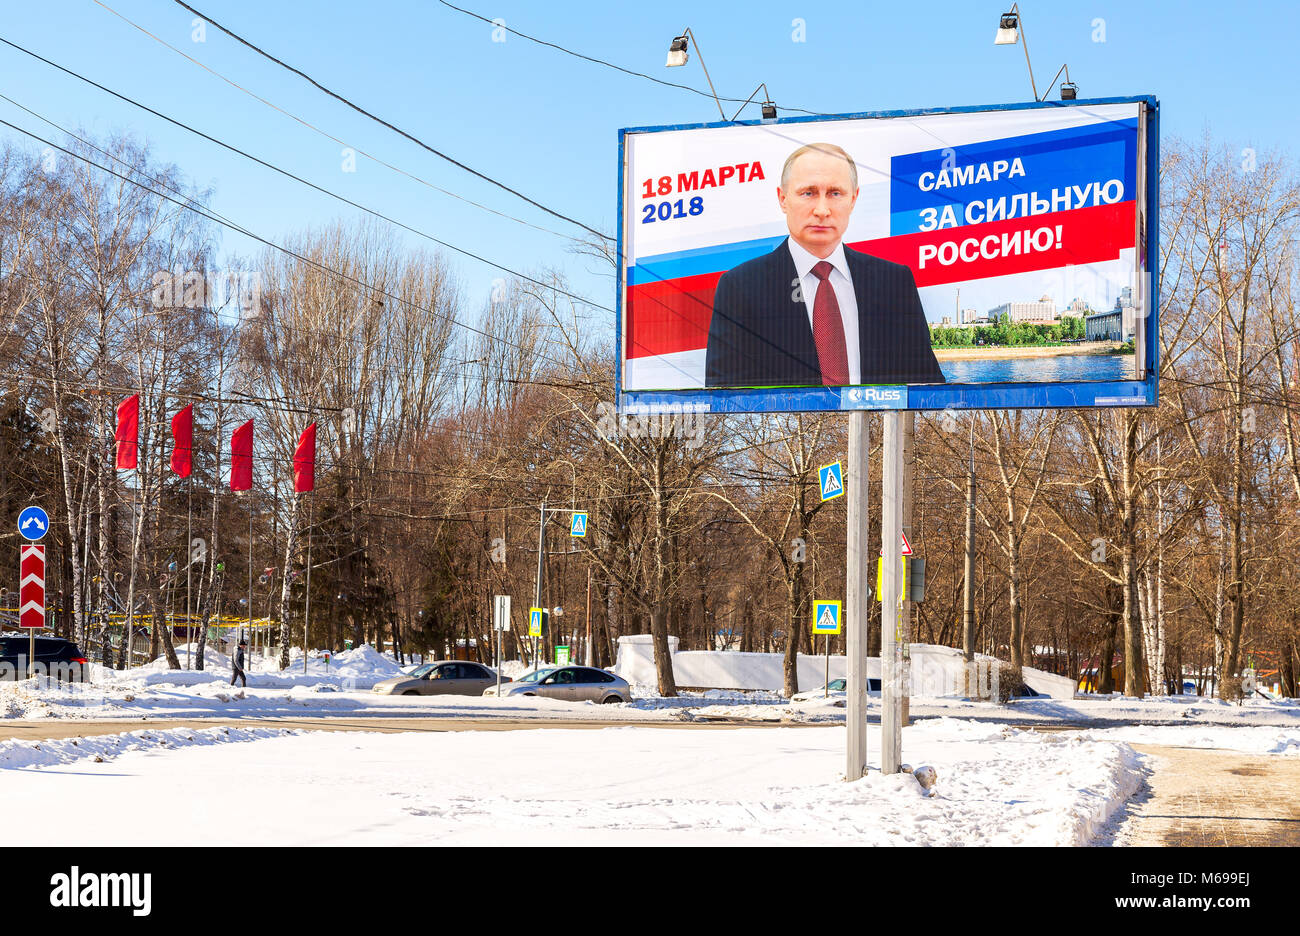 Samara, Russia - March 1, 2018: Election of the President of Russia in March 18, 2018. Billboard of presidential - Stock Image